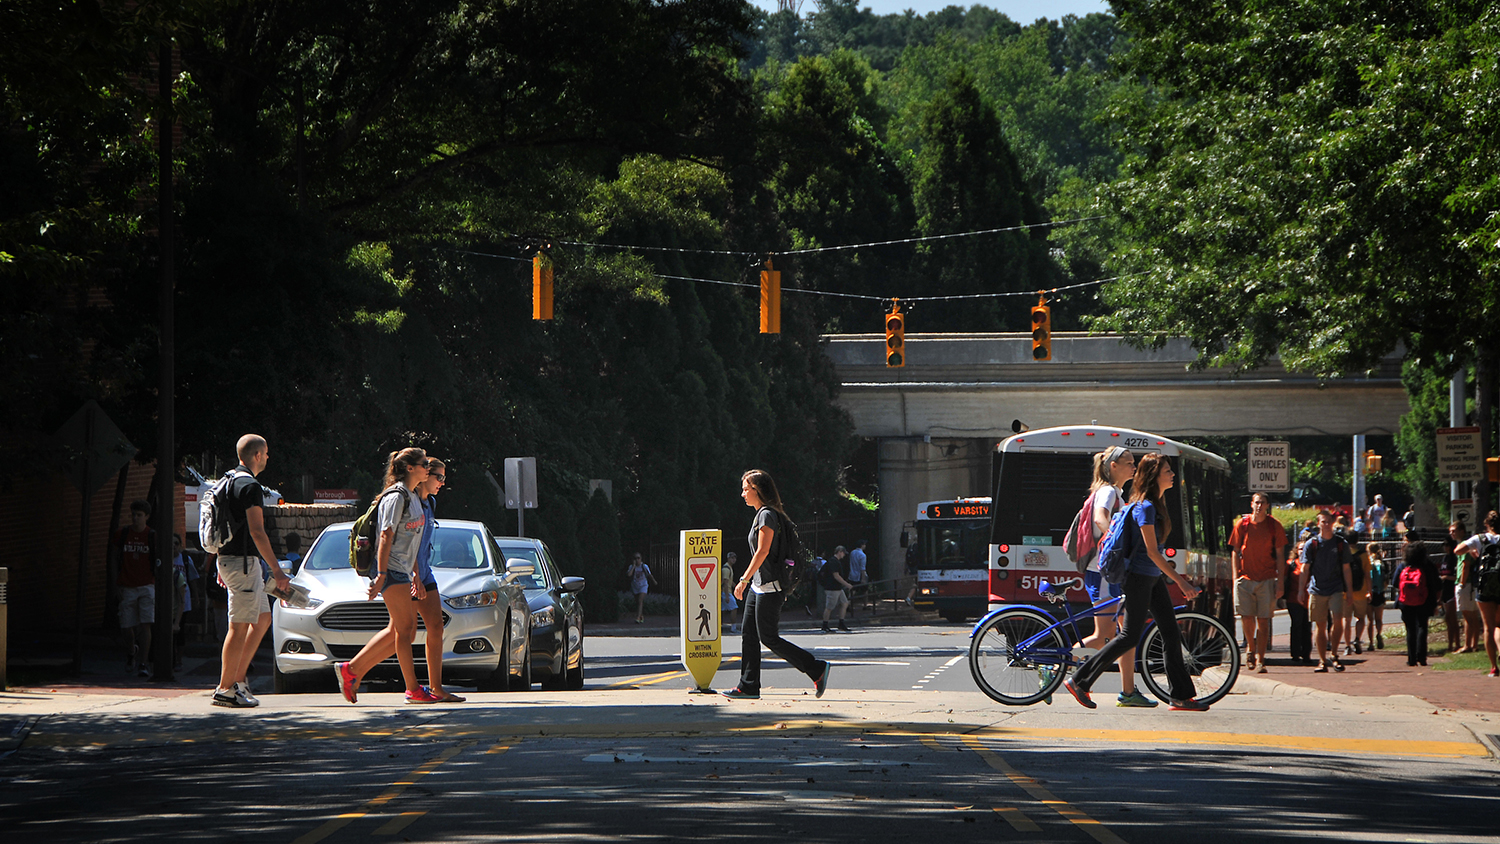 Students cross over Dan Allen Drive as traffic waits.